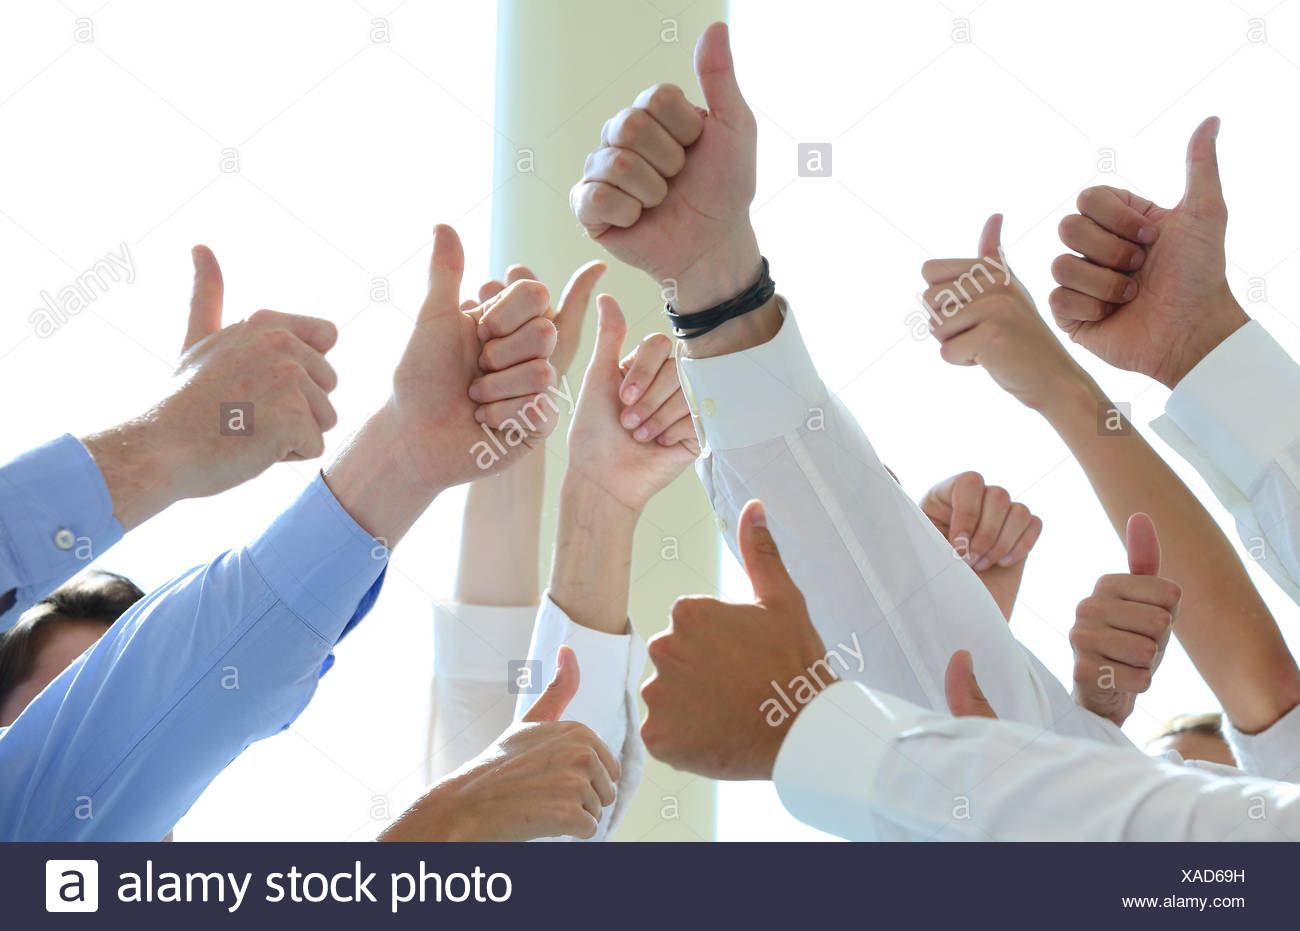 achievement adult approval arm Basque Country business businessman businesspeople businesswoman center close-up collaboration - Stock Image